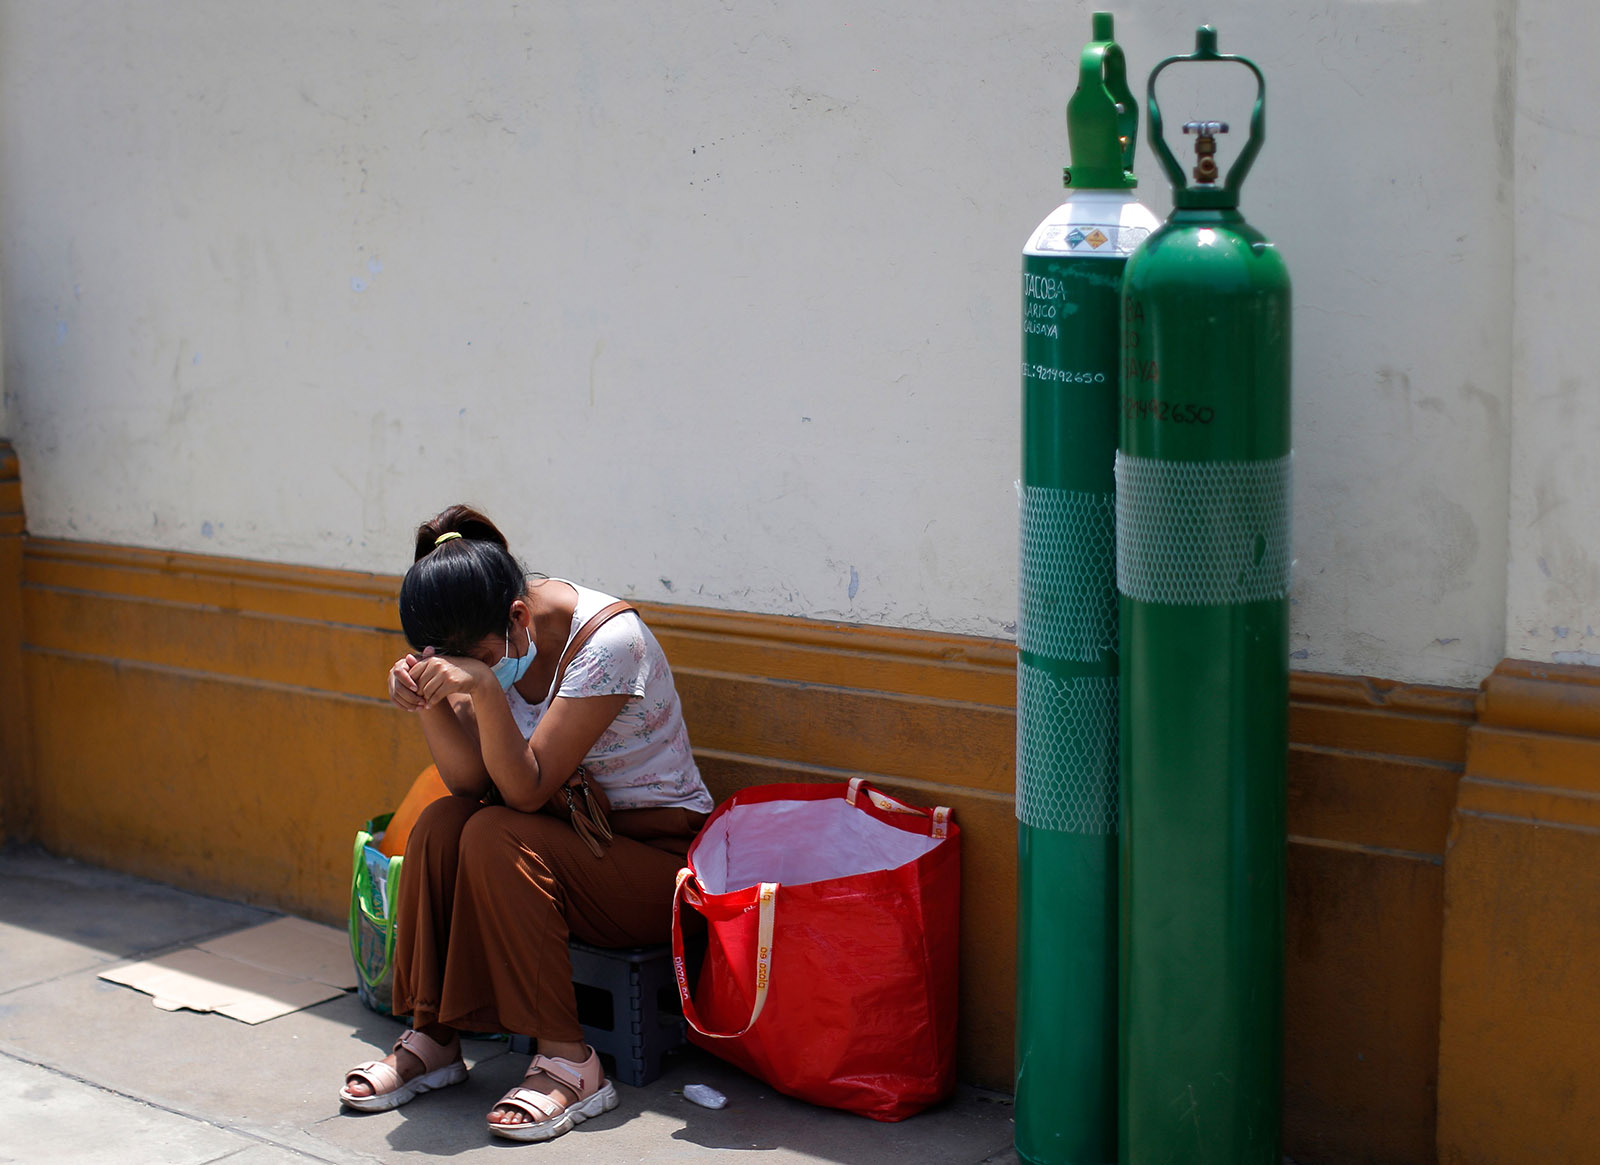 Relatives of Covid-19 victims queue to refill oxygen tanks, in Lima, Peru on February 9, 2021.